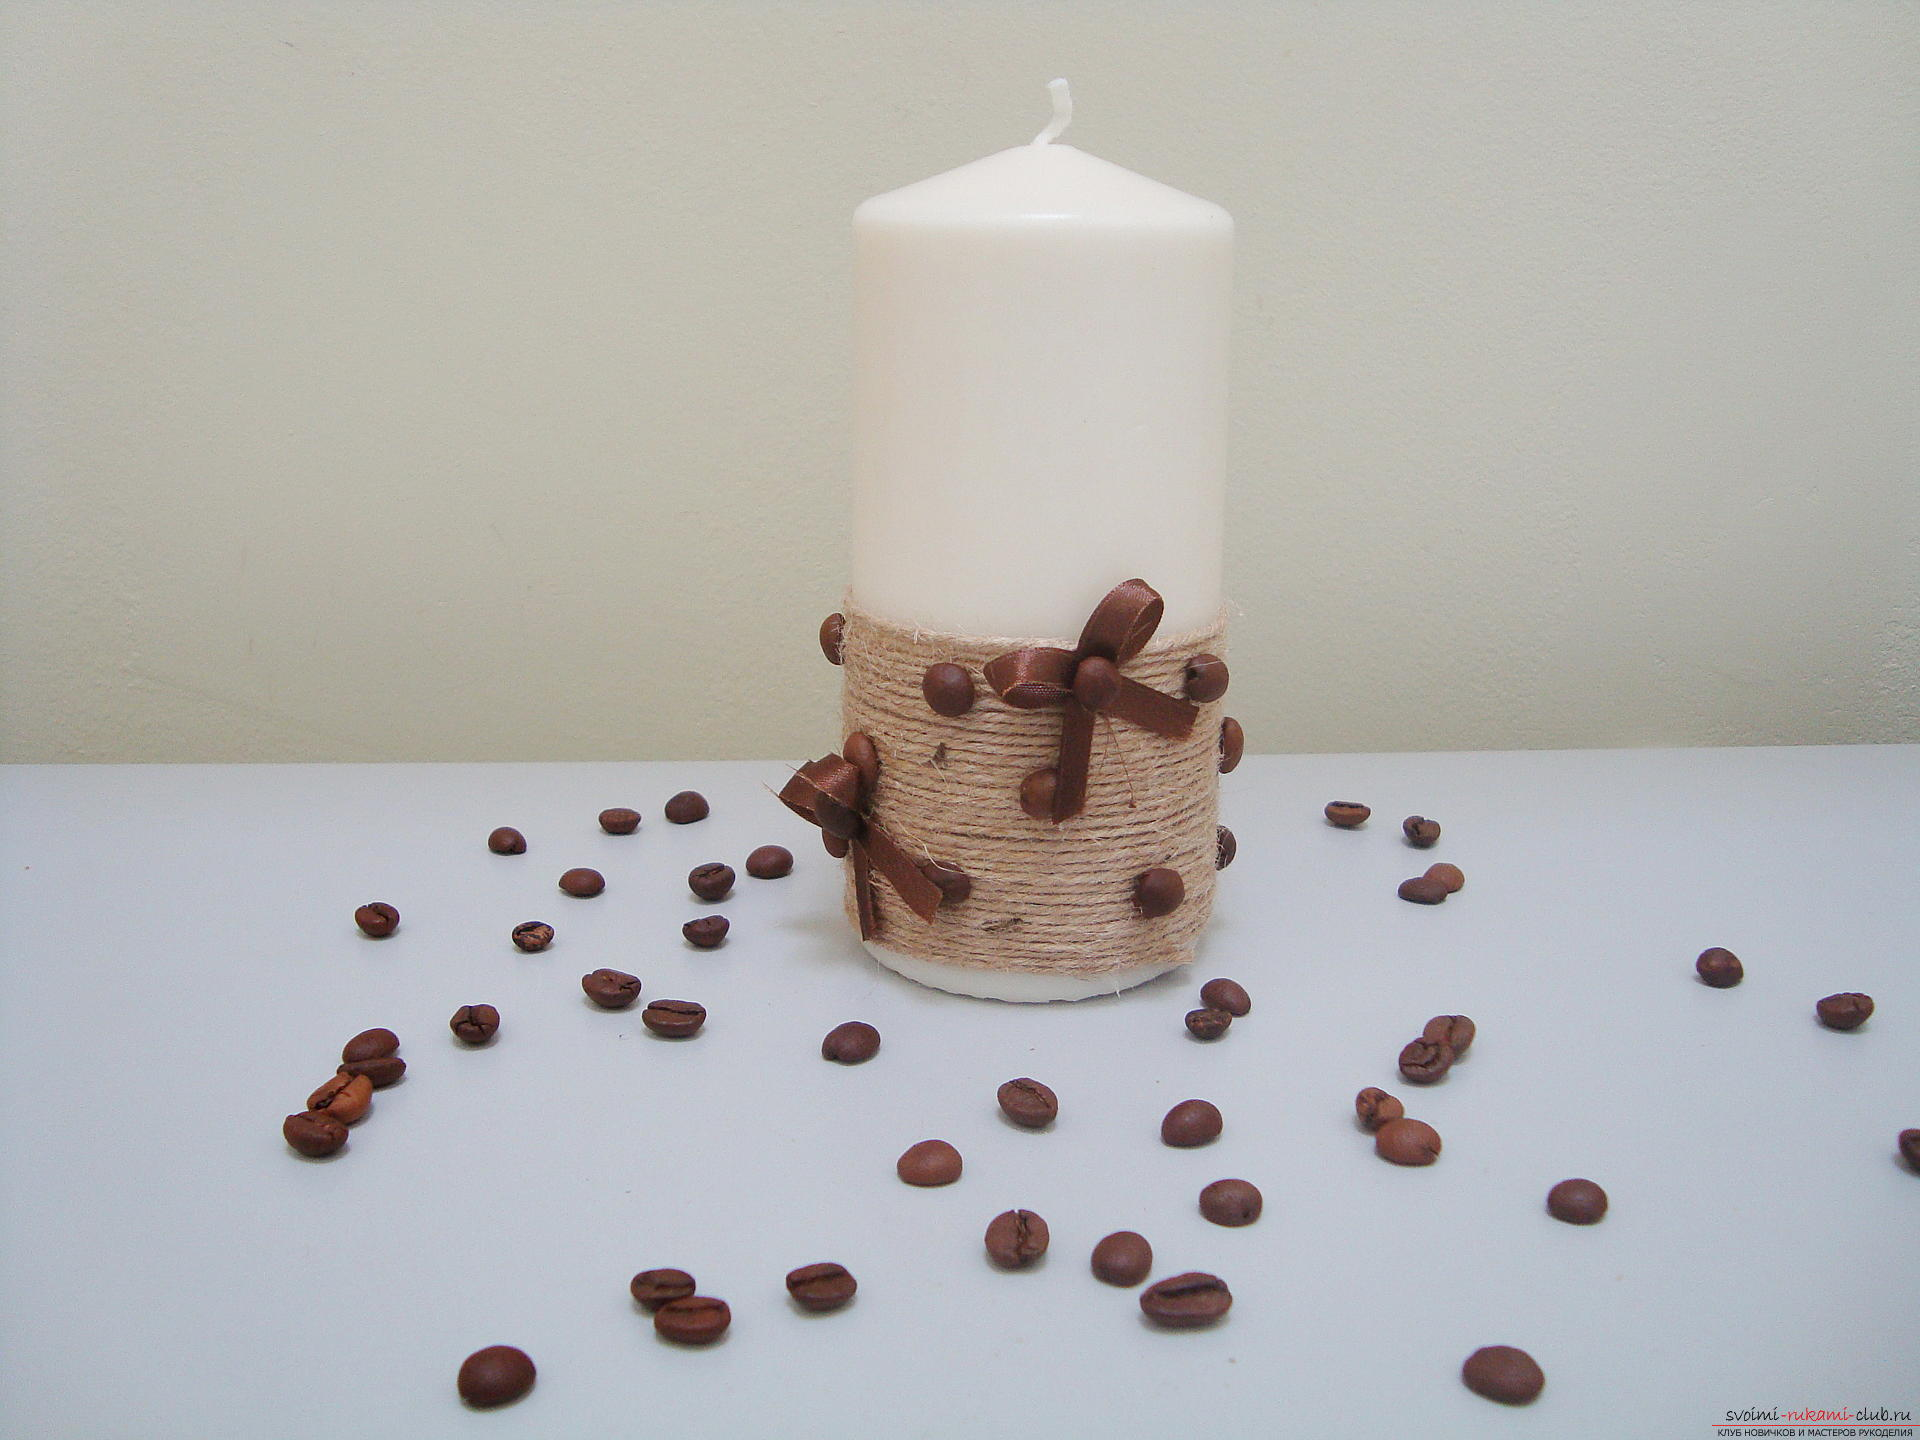 Photos to the step-by-step guide on making a decorative candle made from coffee beans. Photo №1